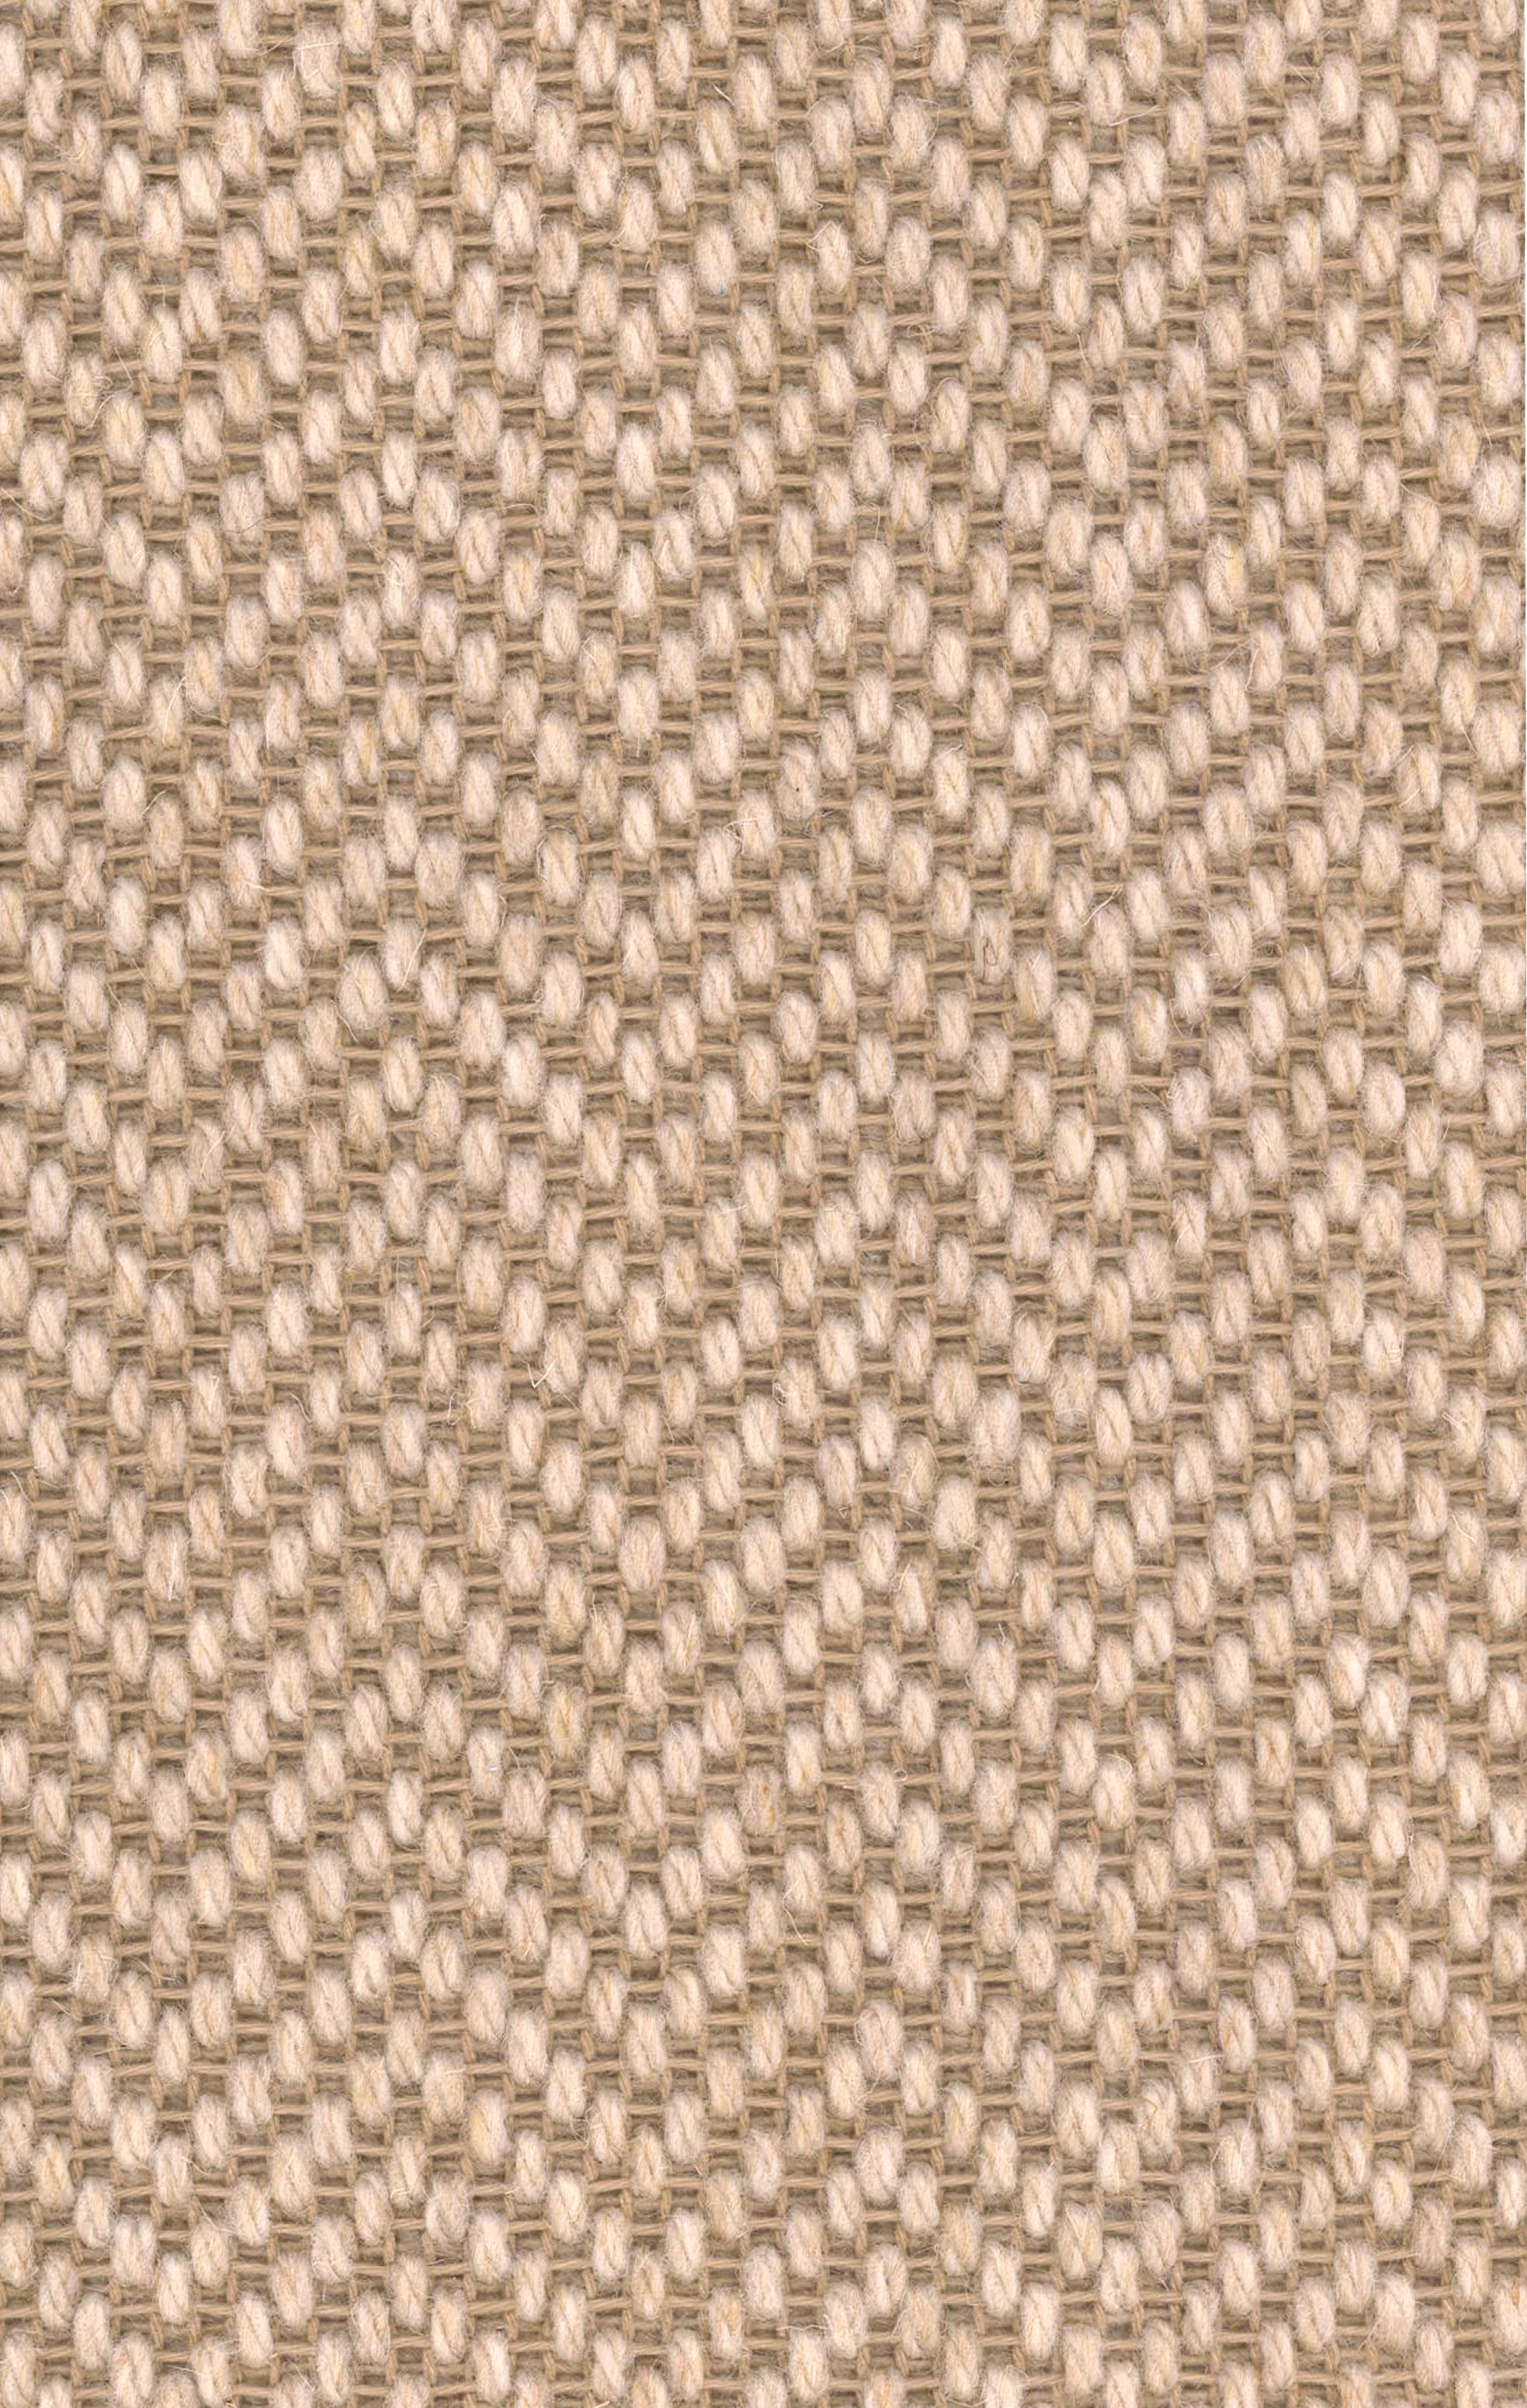 Herringbone Cortenaer Wool Carpet A Wool And Synthetic Blend Of